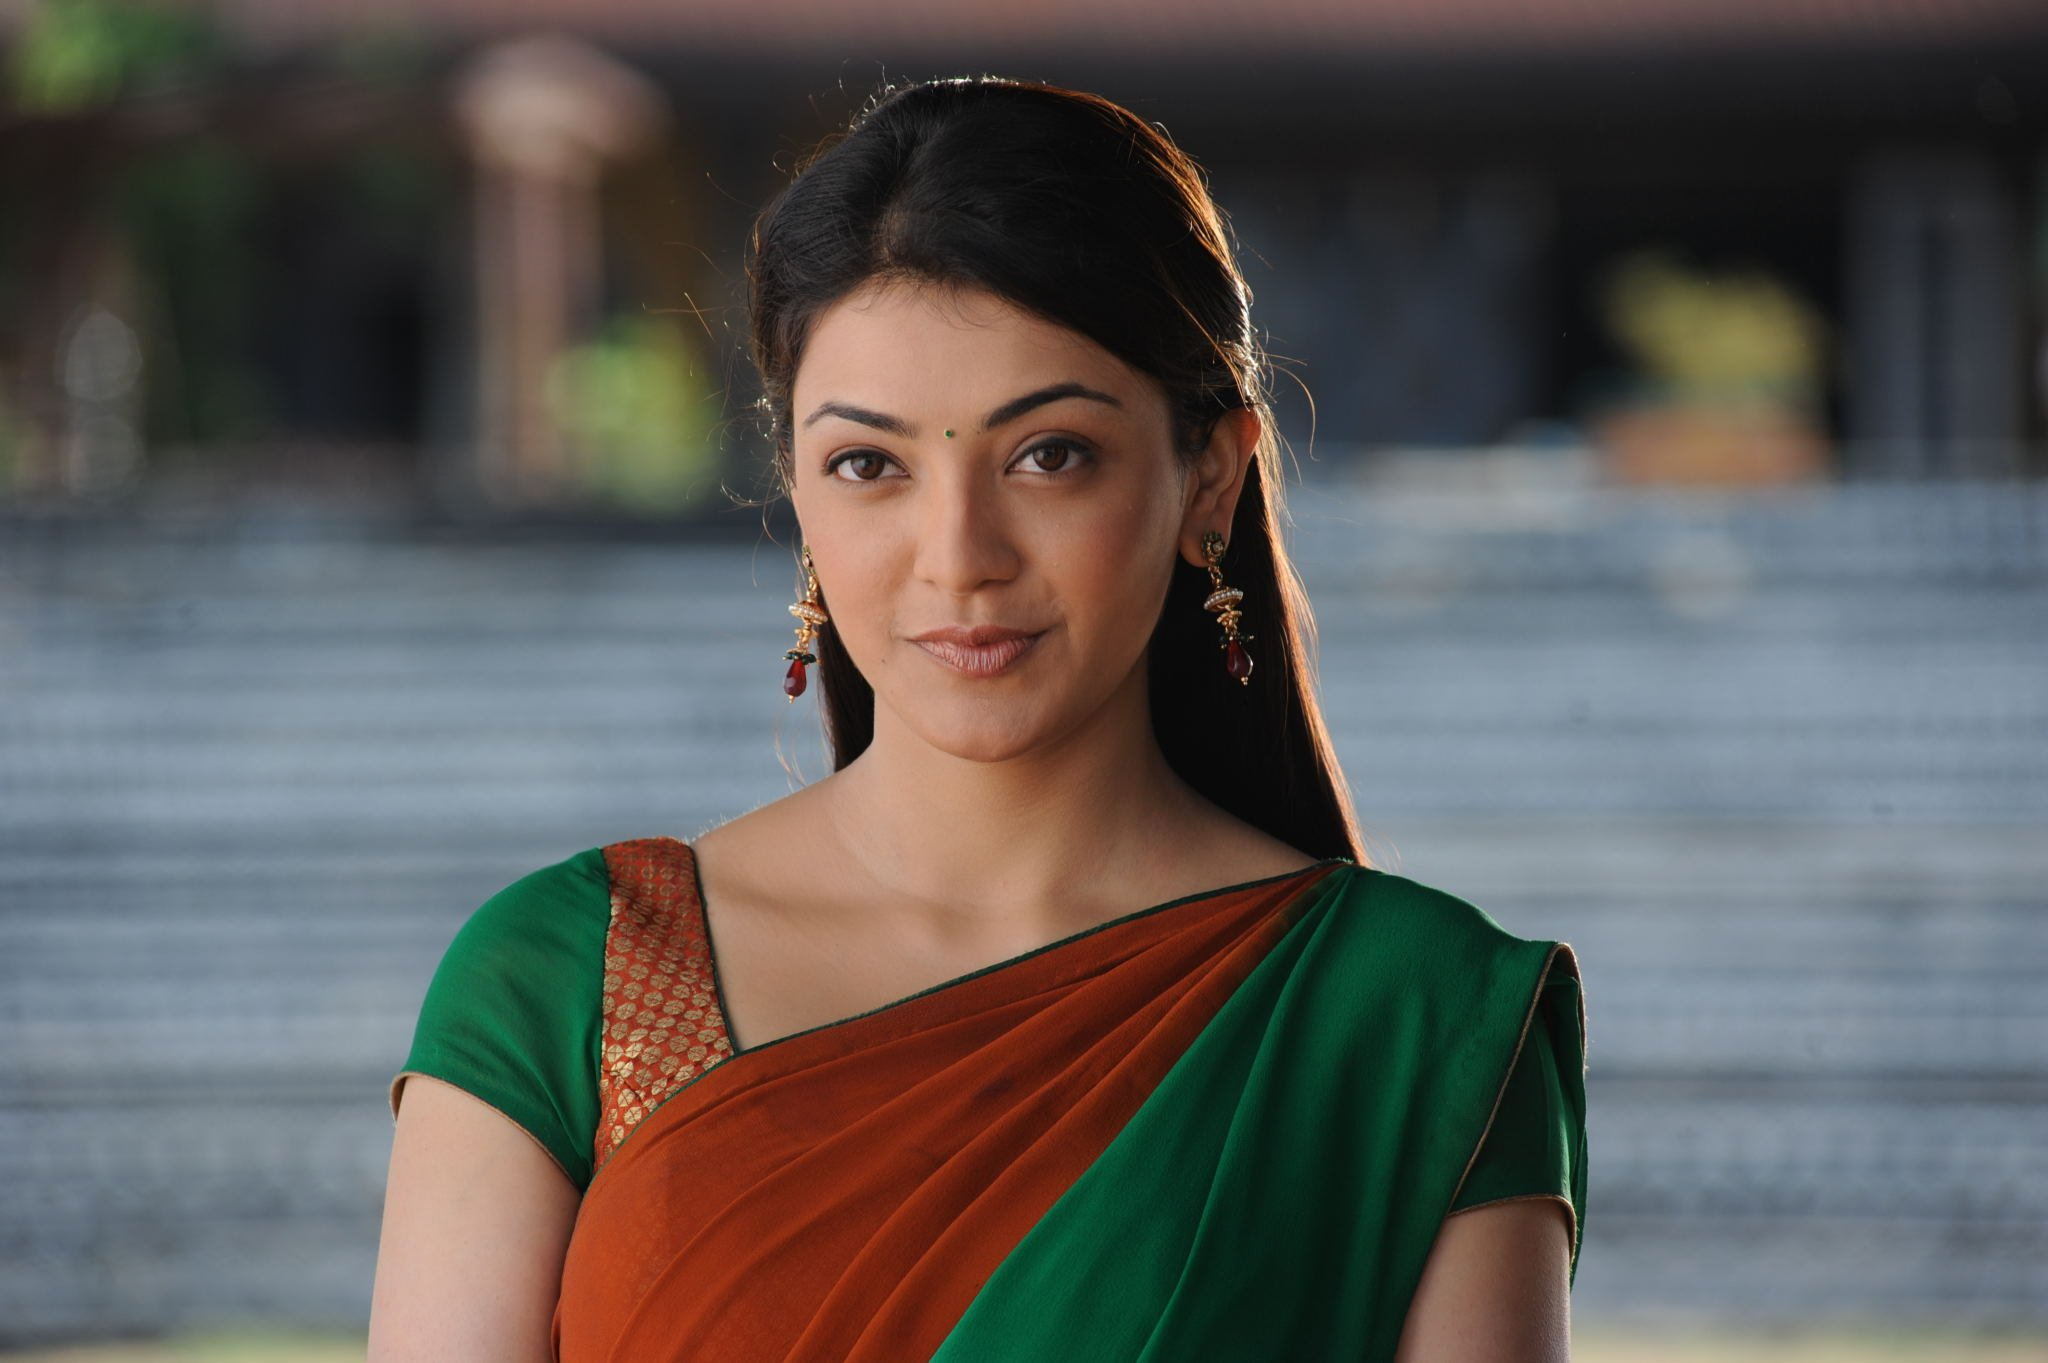 30 kajal agarwal hd wallpapers   background images - wallpaper abyss